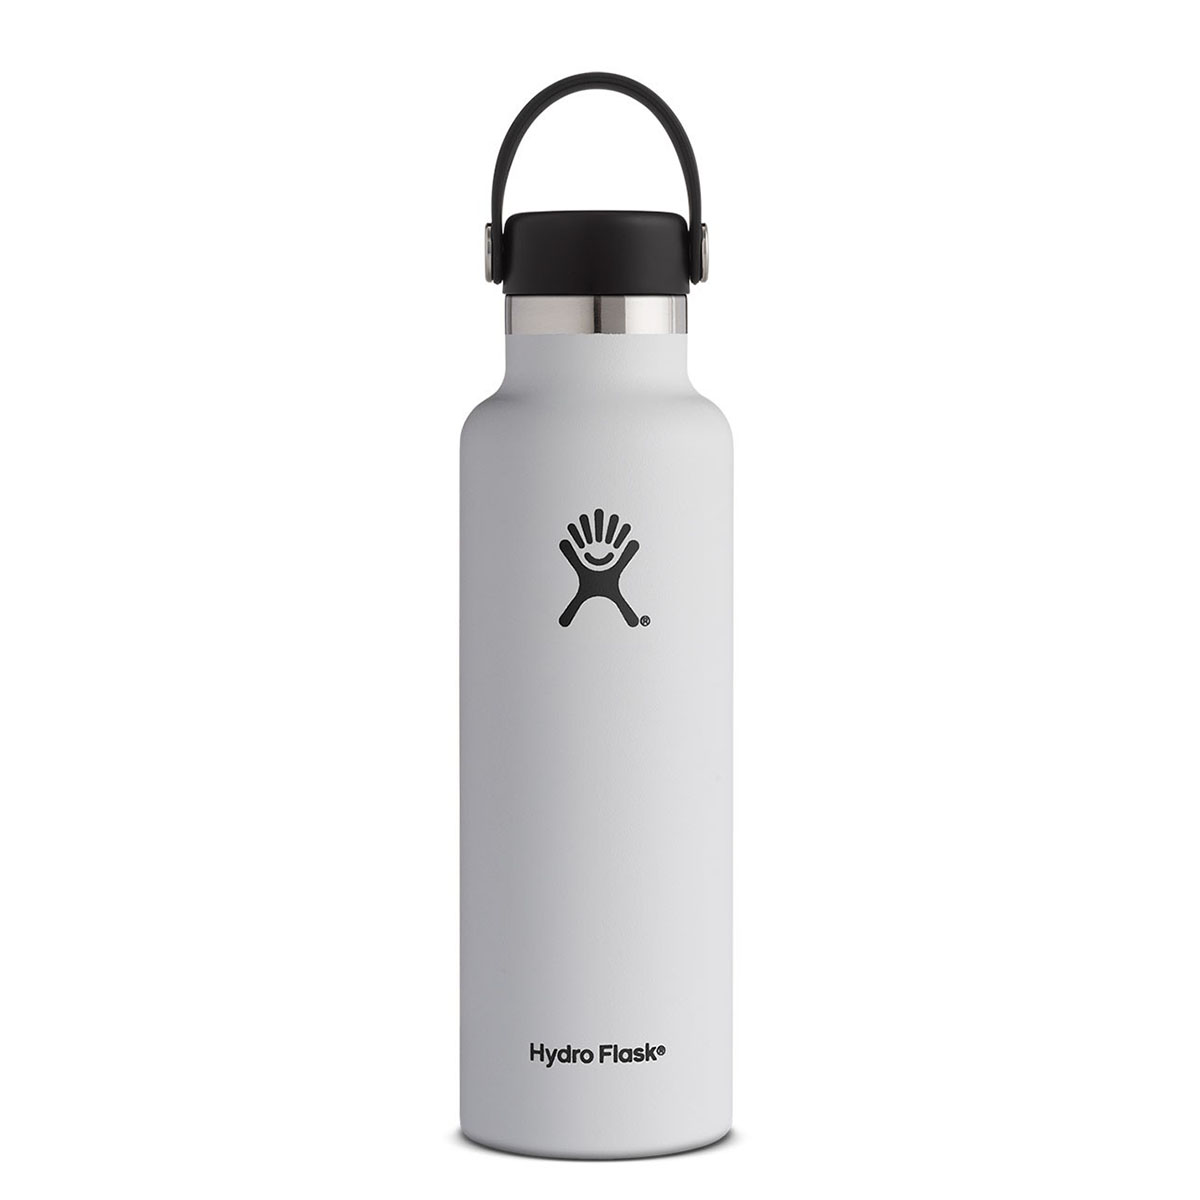 Iconicimprint hydroflask21ozwaterbottle white